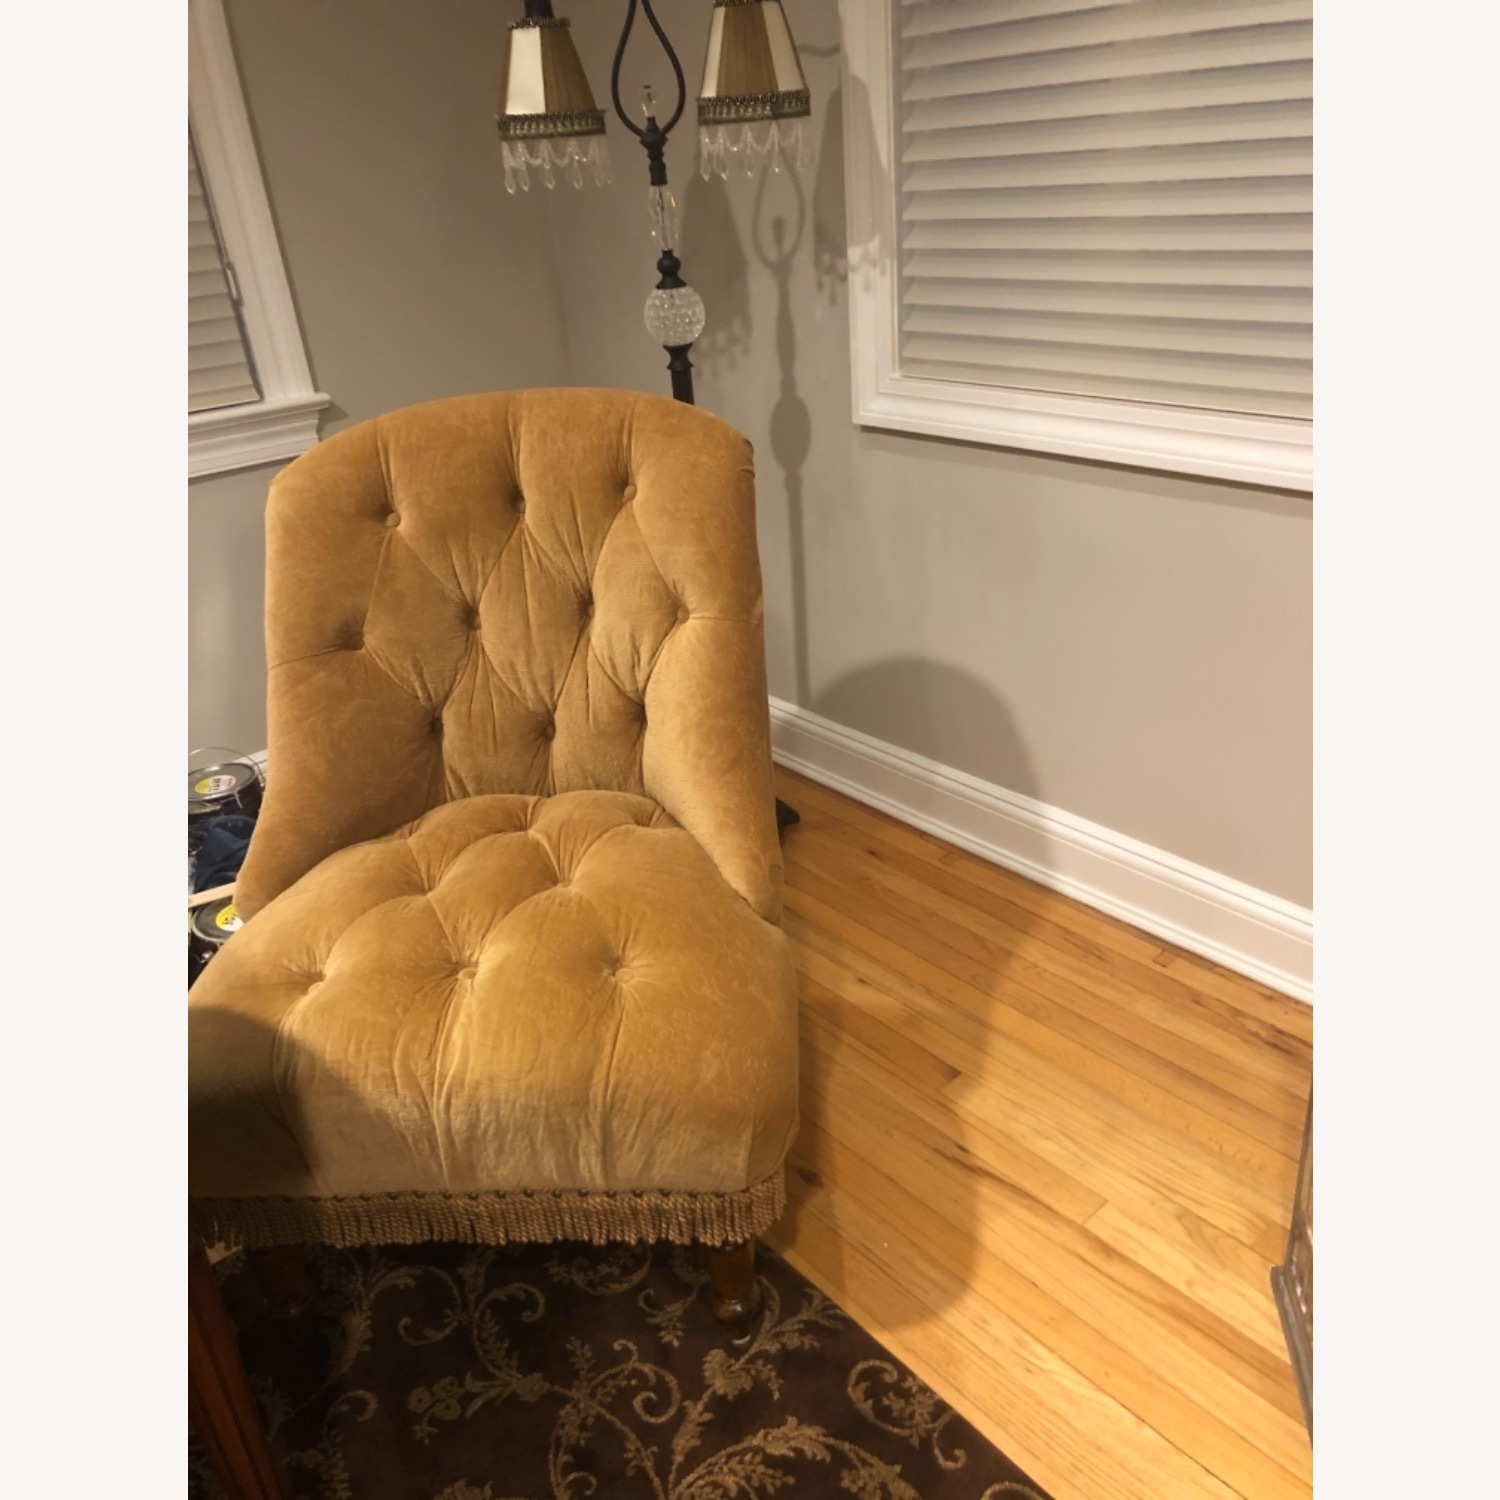 Peter Andrews Accent Chairs - image-2